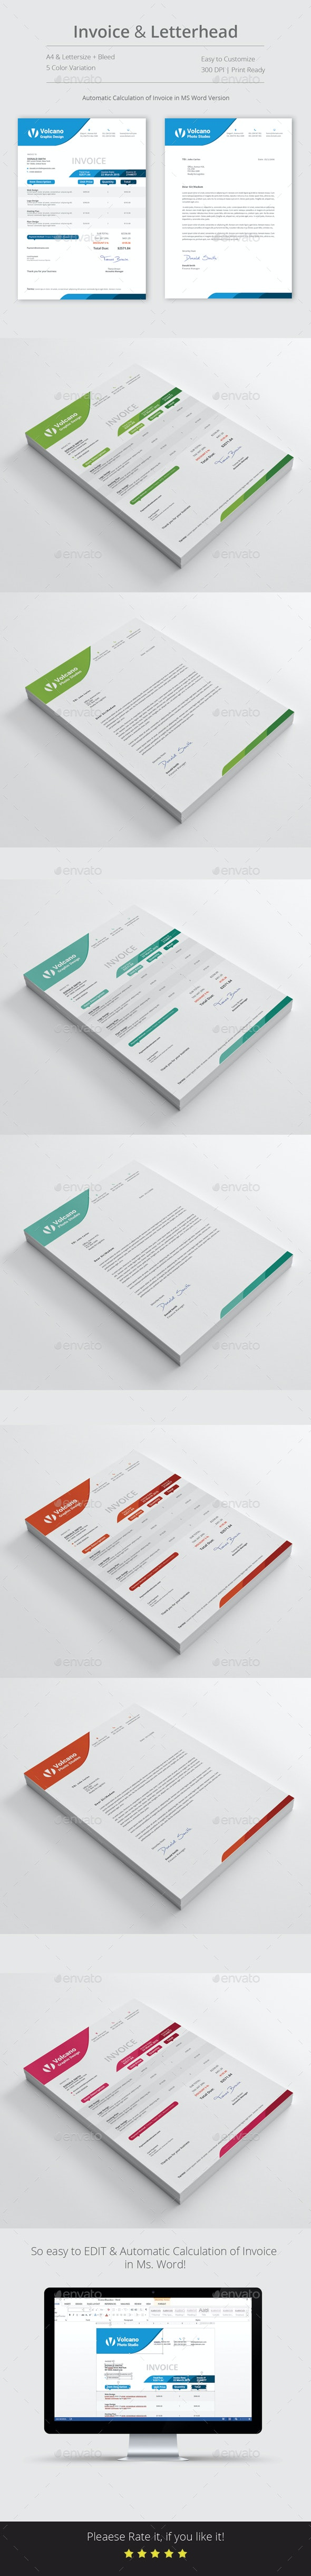 Invoice with Letterhead - Stationery Print Templates